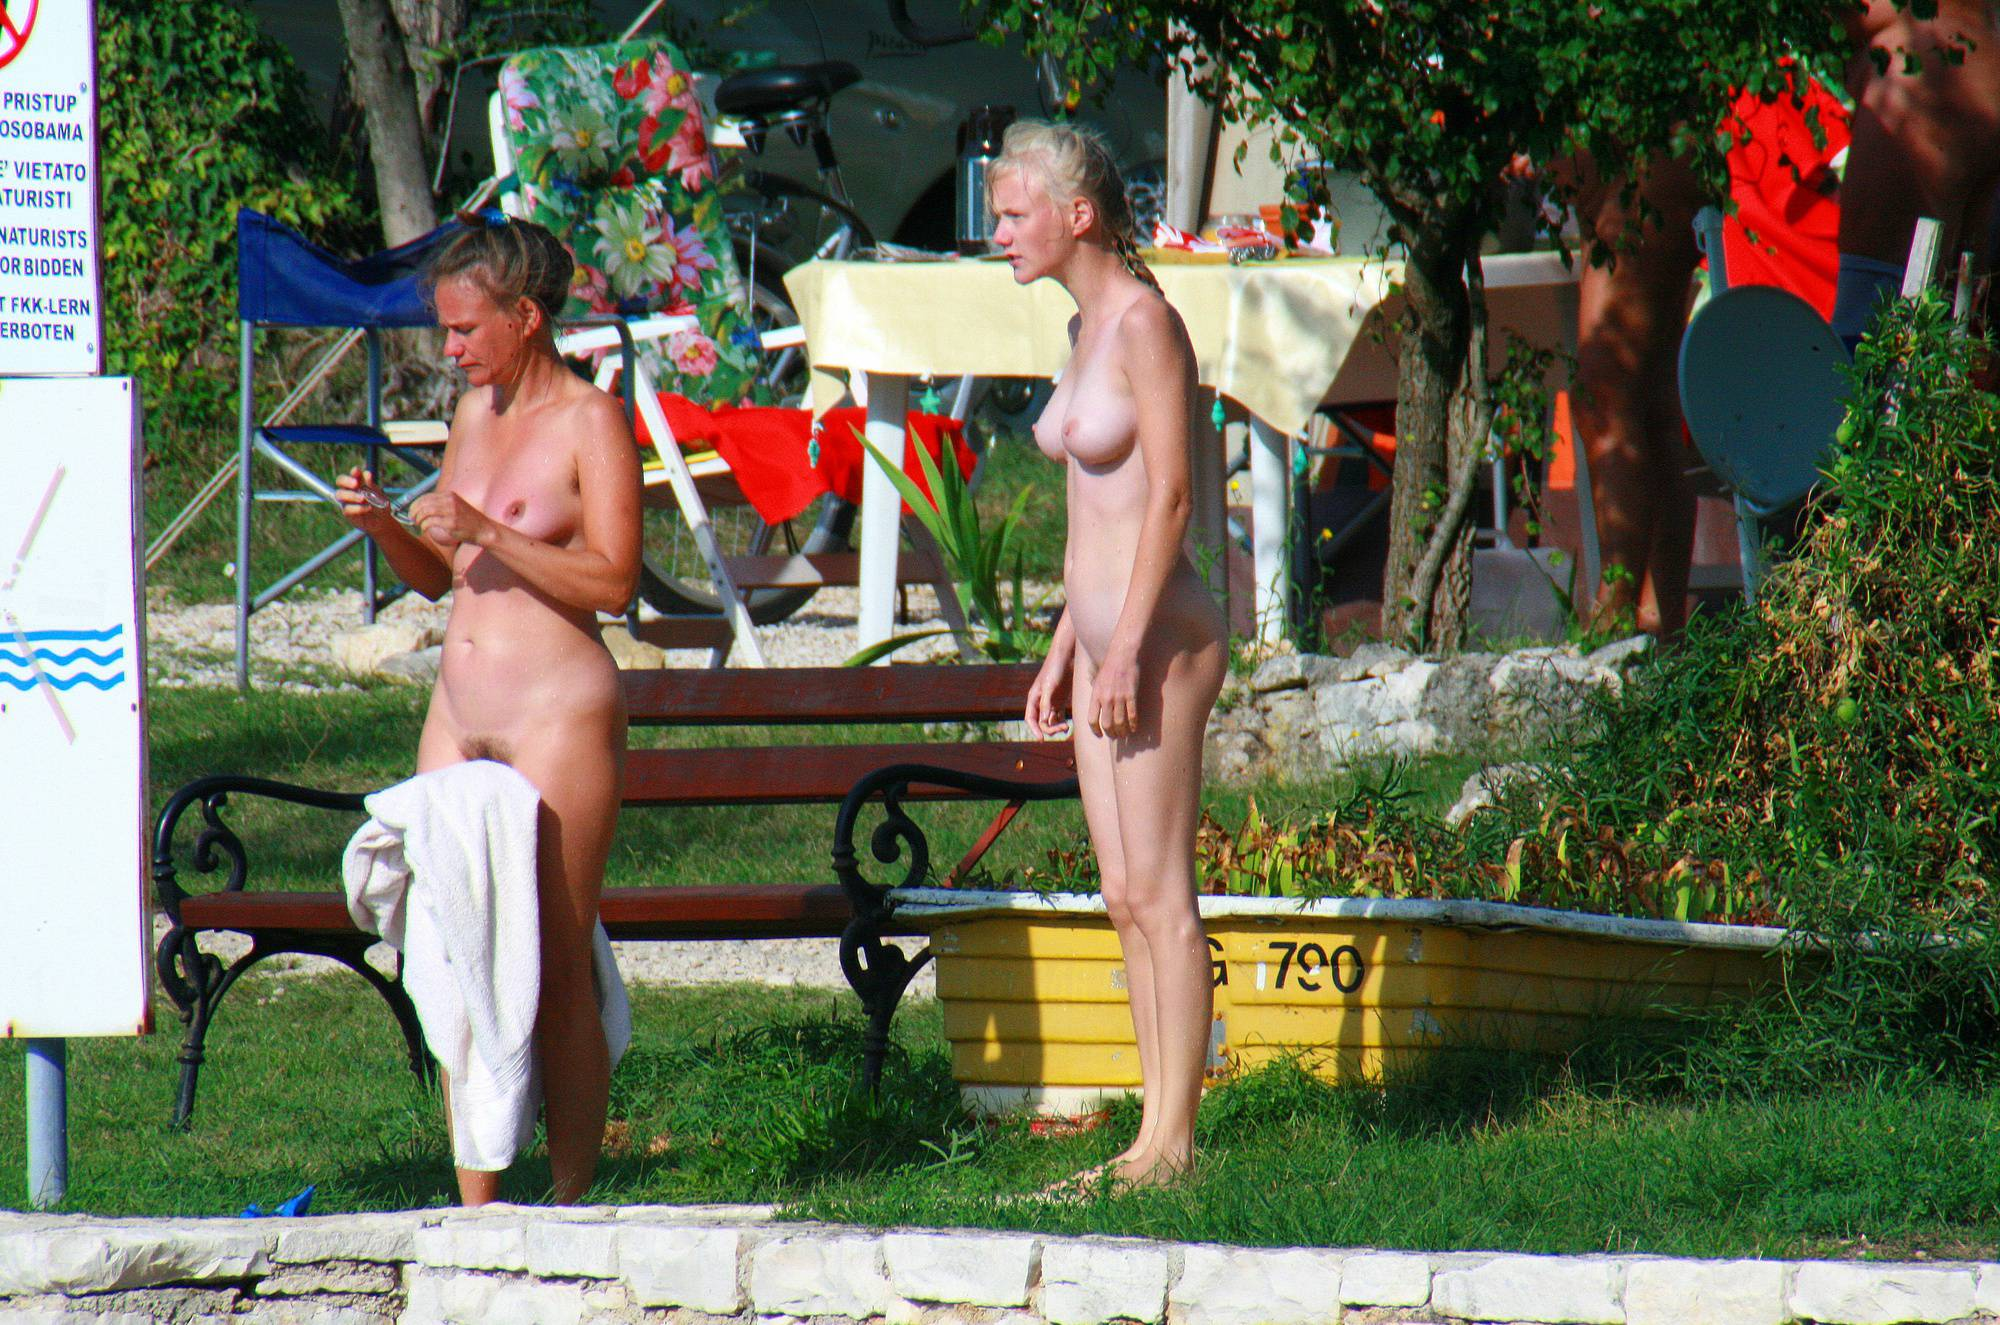 Pure Nudism Images-Ula FKK Mother and Girl Tour - 3